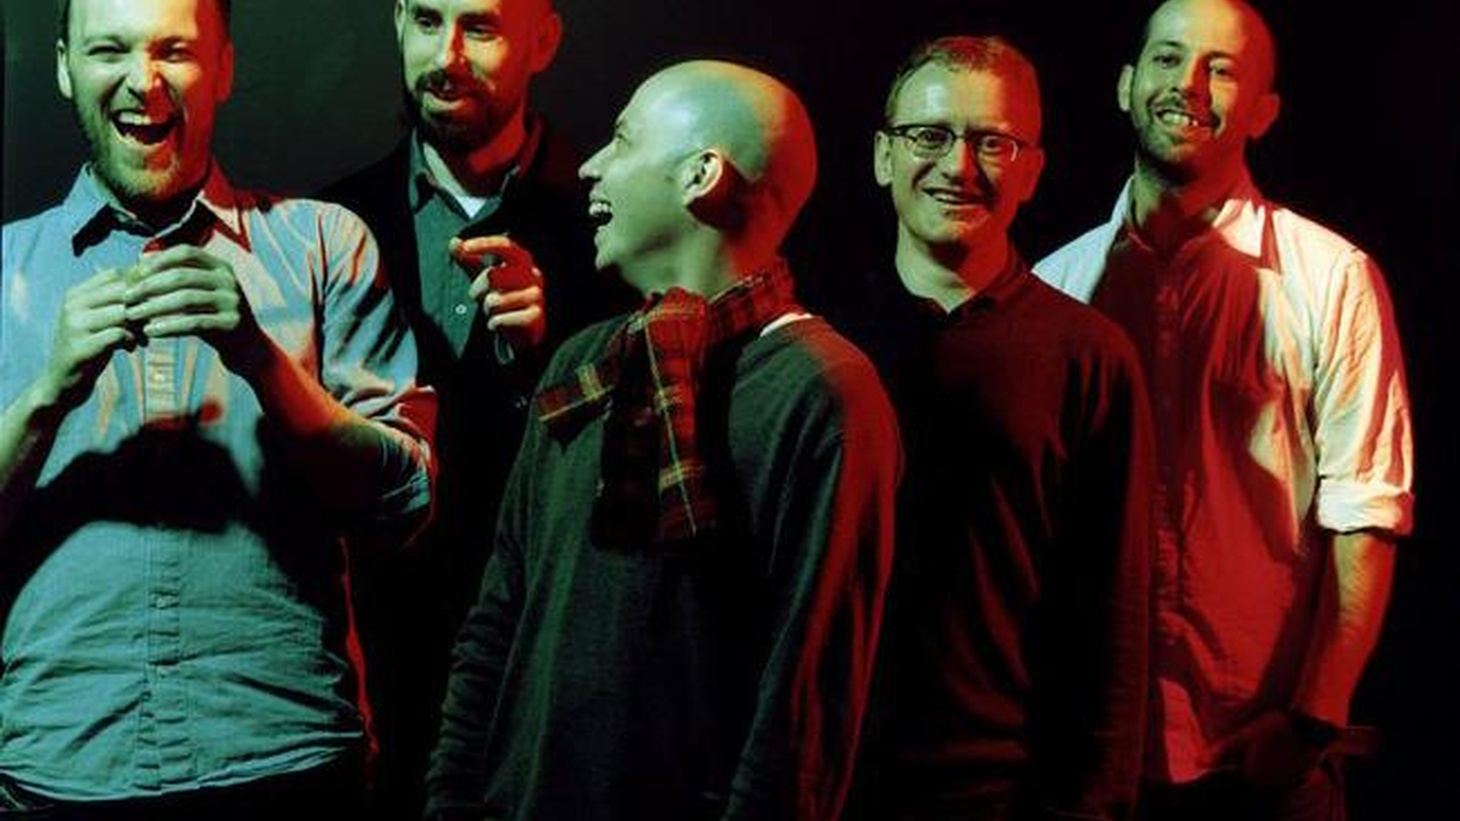 Scottish band Mogwai returns with their eighth studio album, following their acclaimed soundtrack for a French TV series.